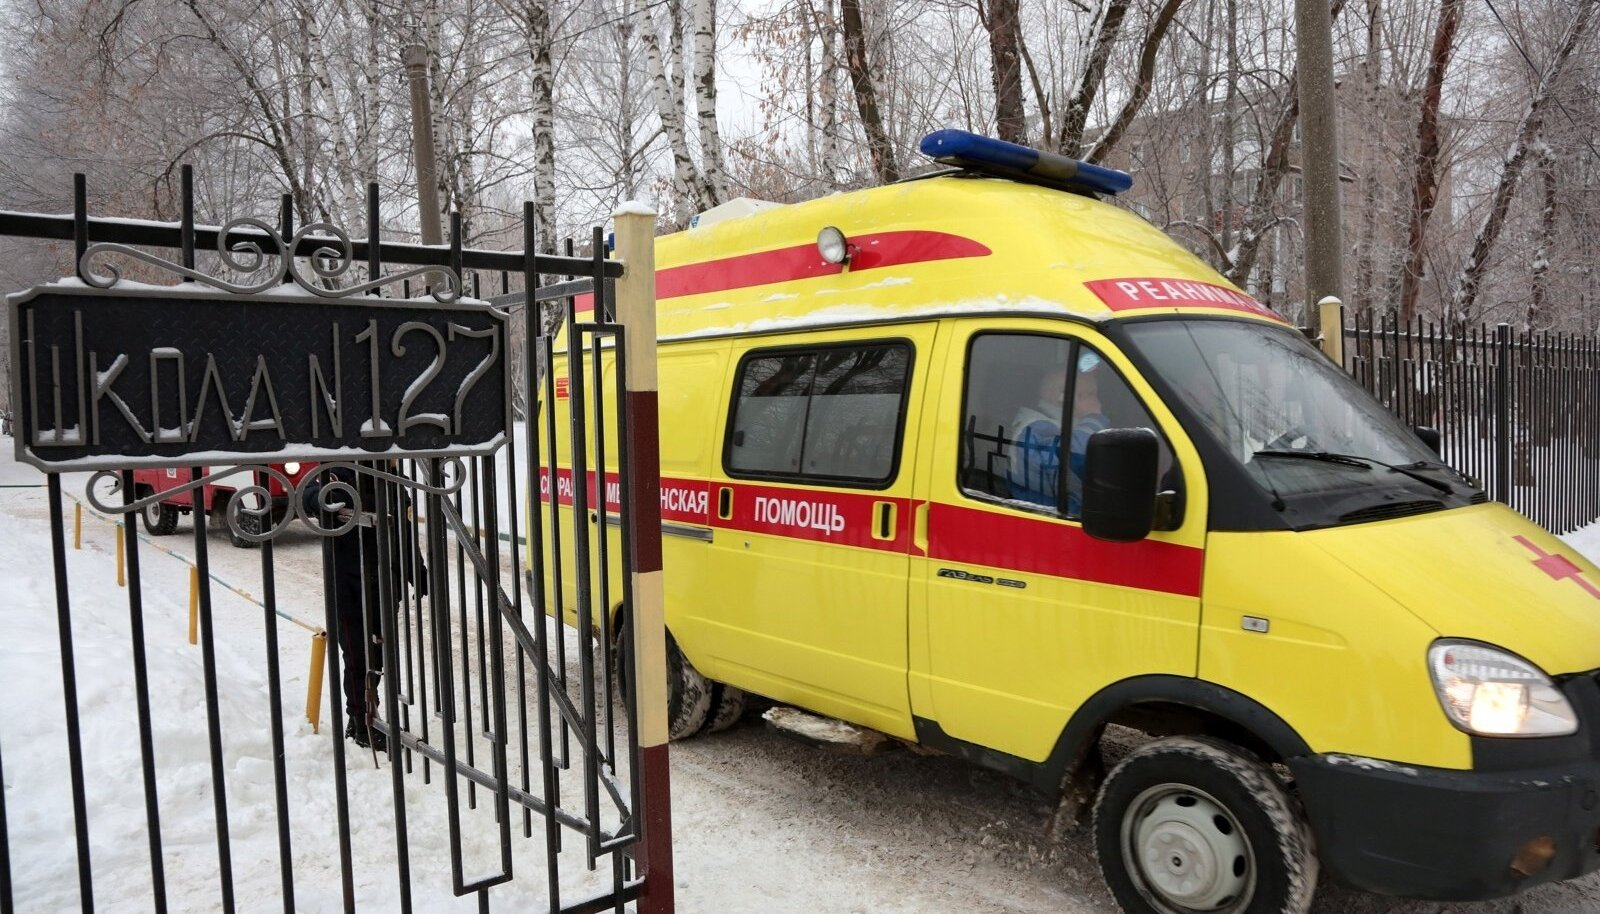 Knife violence in Perm secondary school leaves several injured